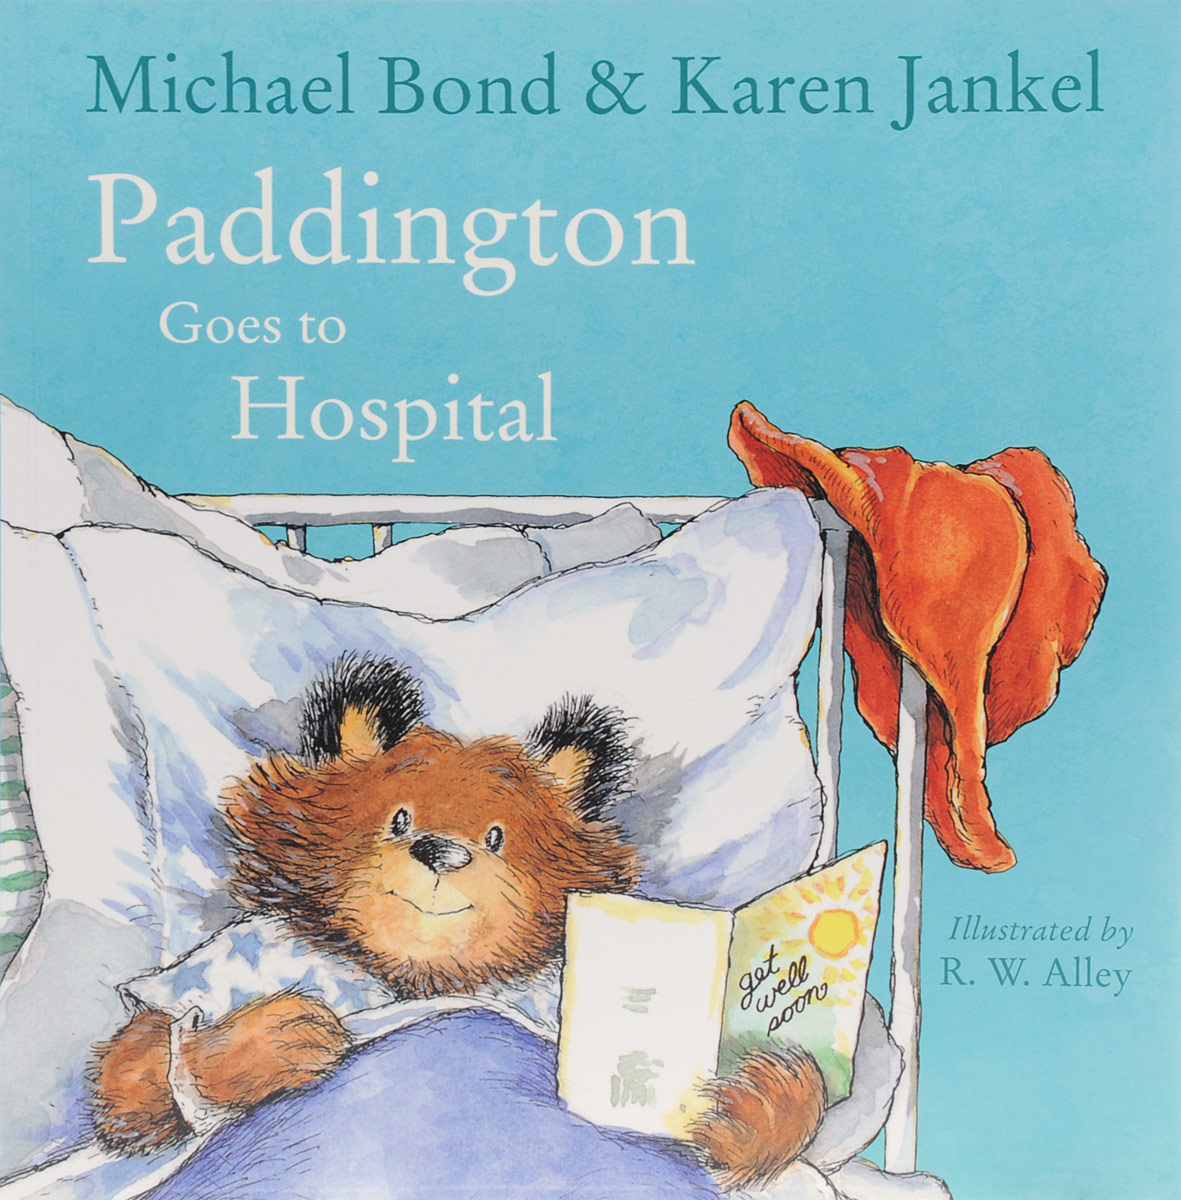 Paddington Goes to Hospital maisy goes by plane